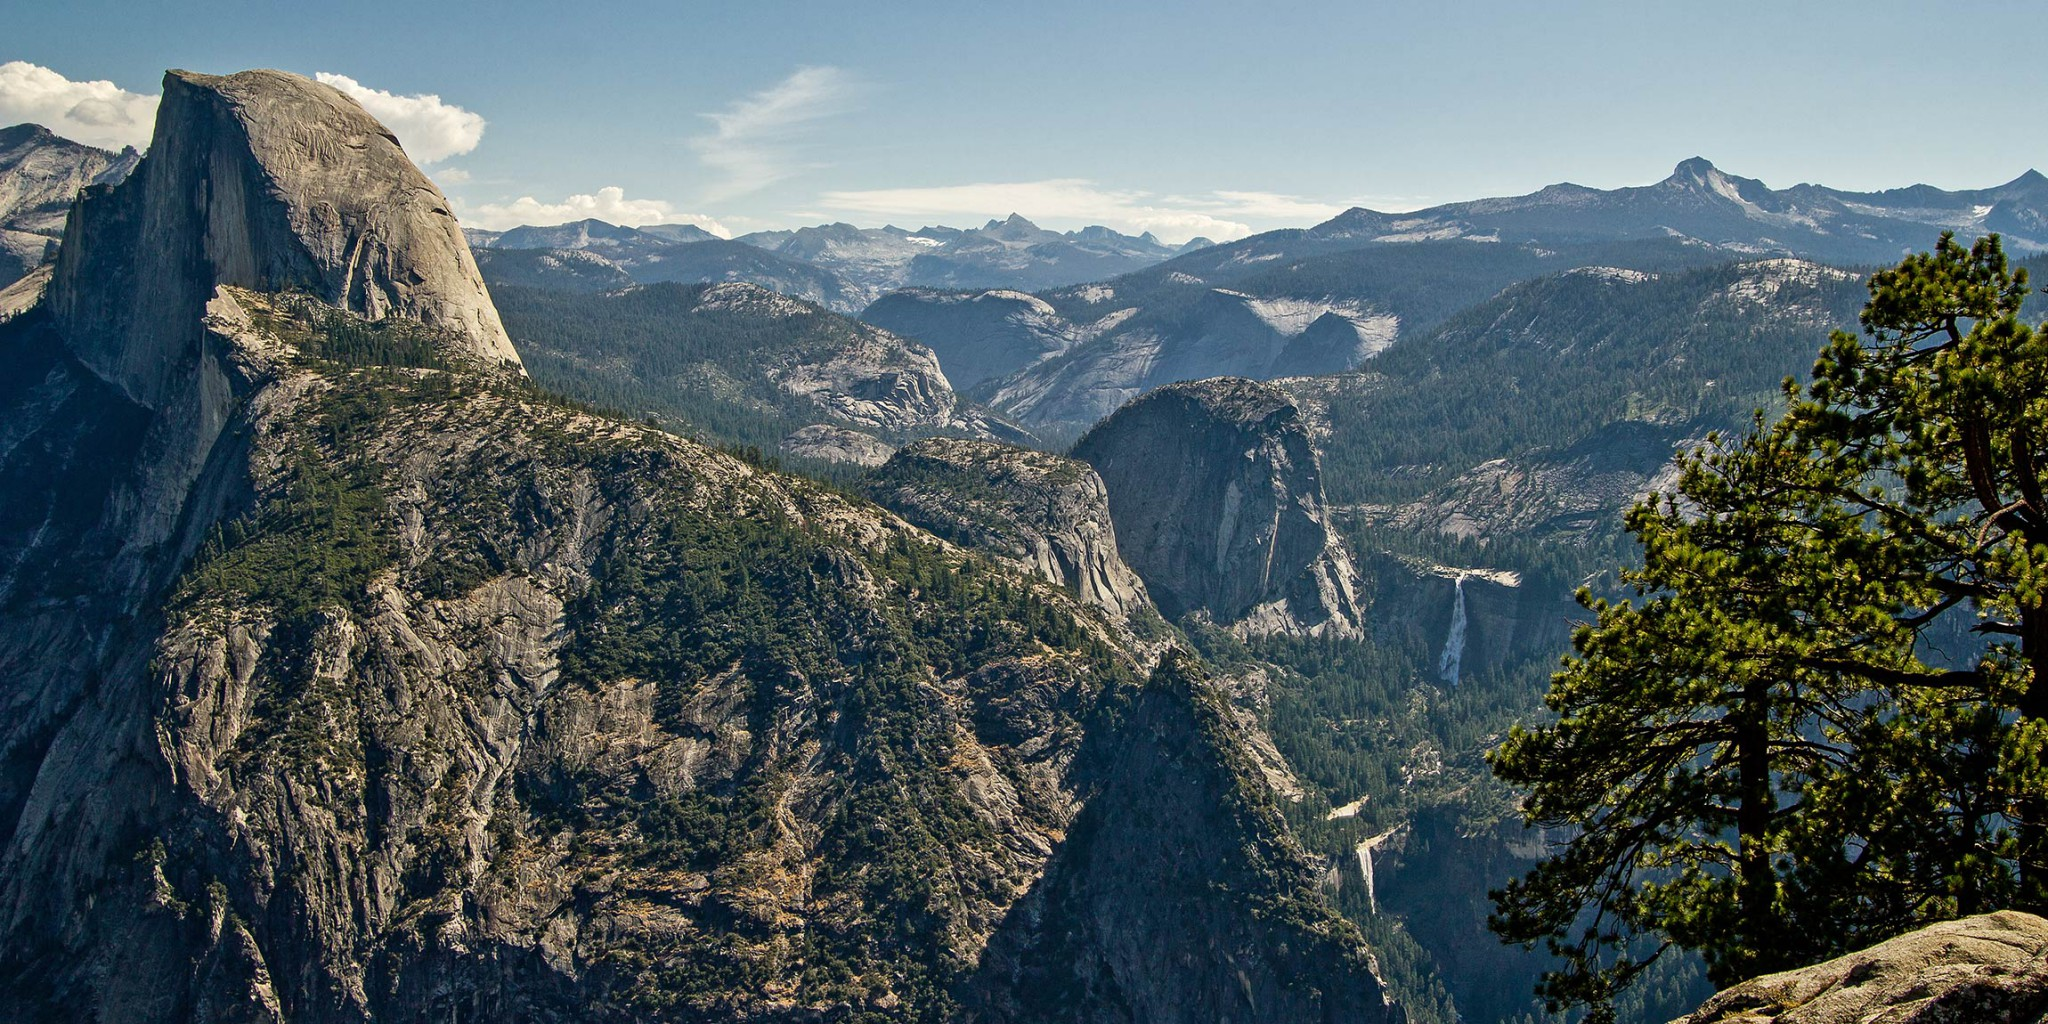 Yosemite National Park, USA © 2011 Uwe Schumacher